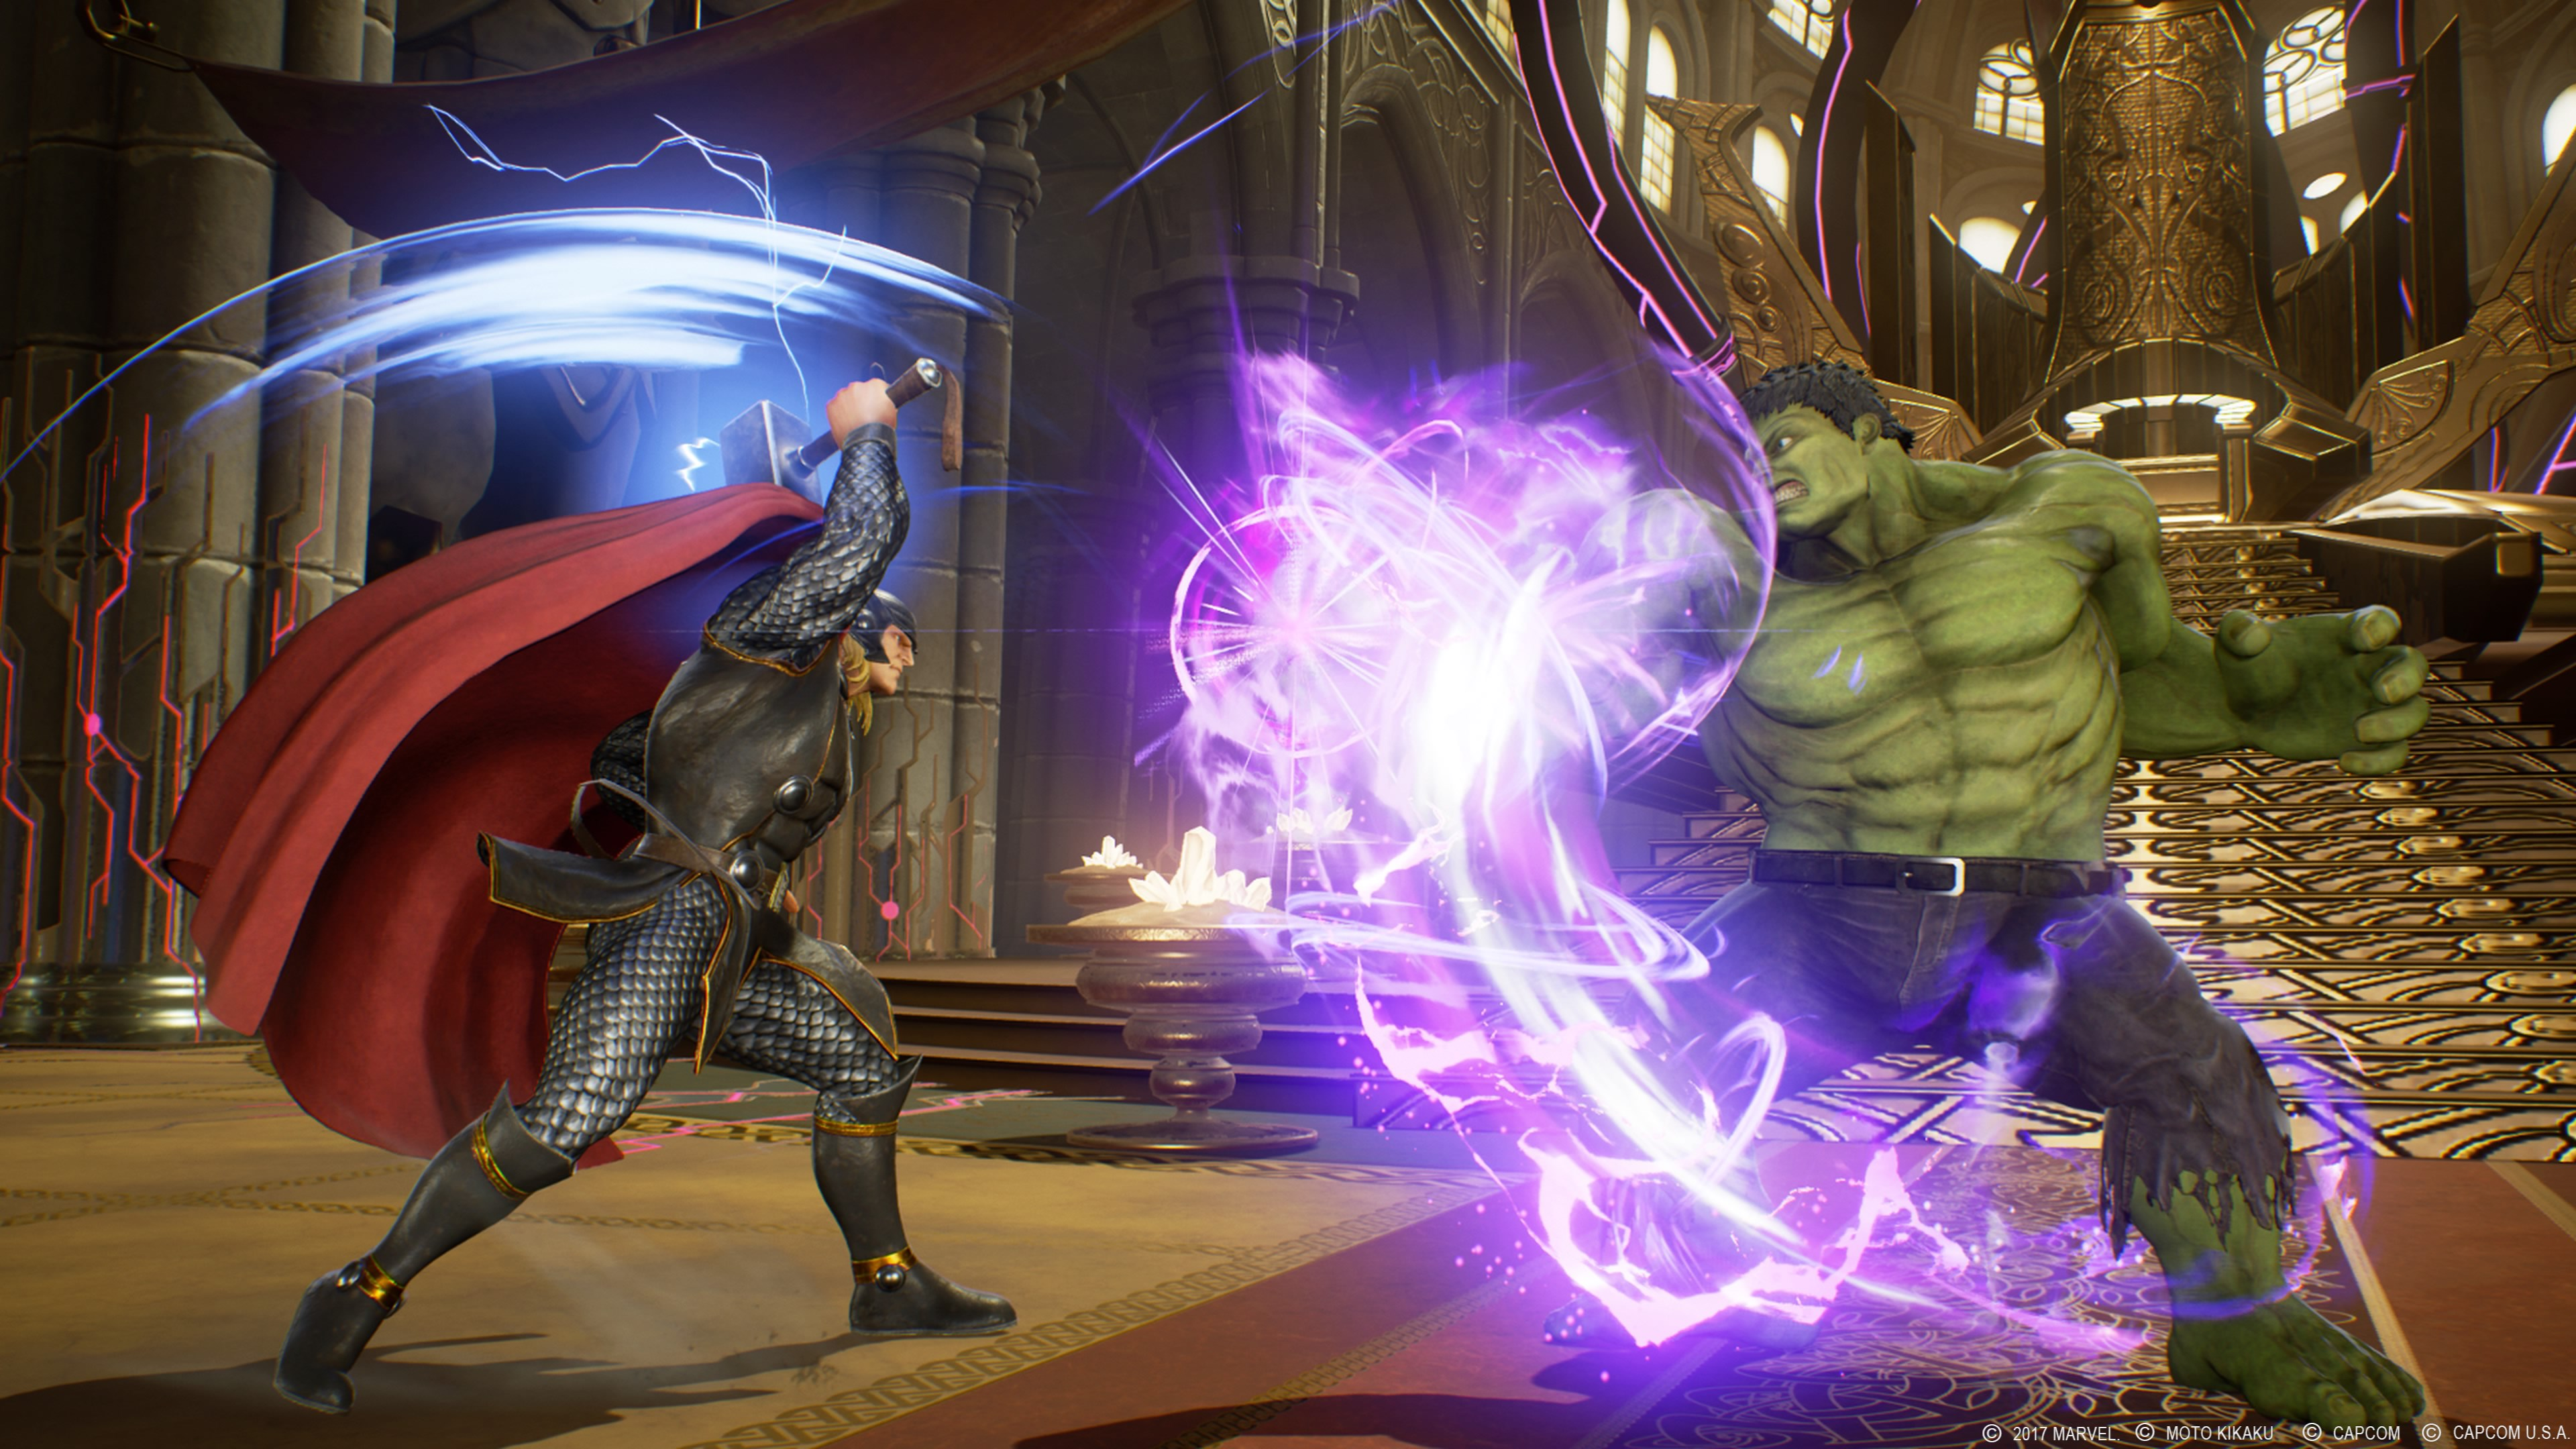 Marvel vs. Capcom: Infinite - Marvel vs. Capcom: Infinite 4K